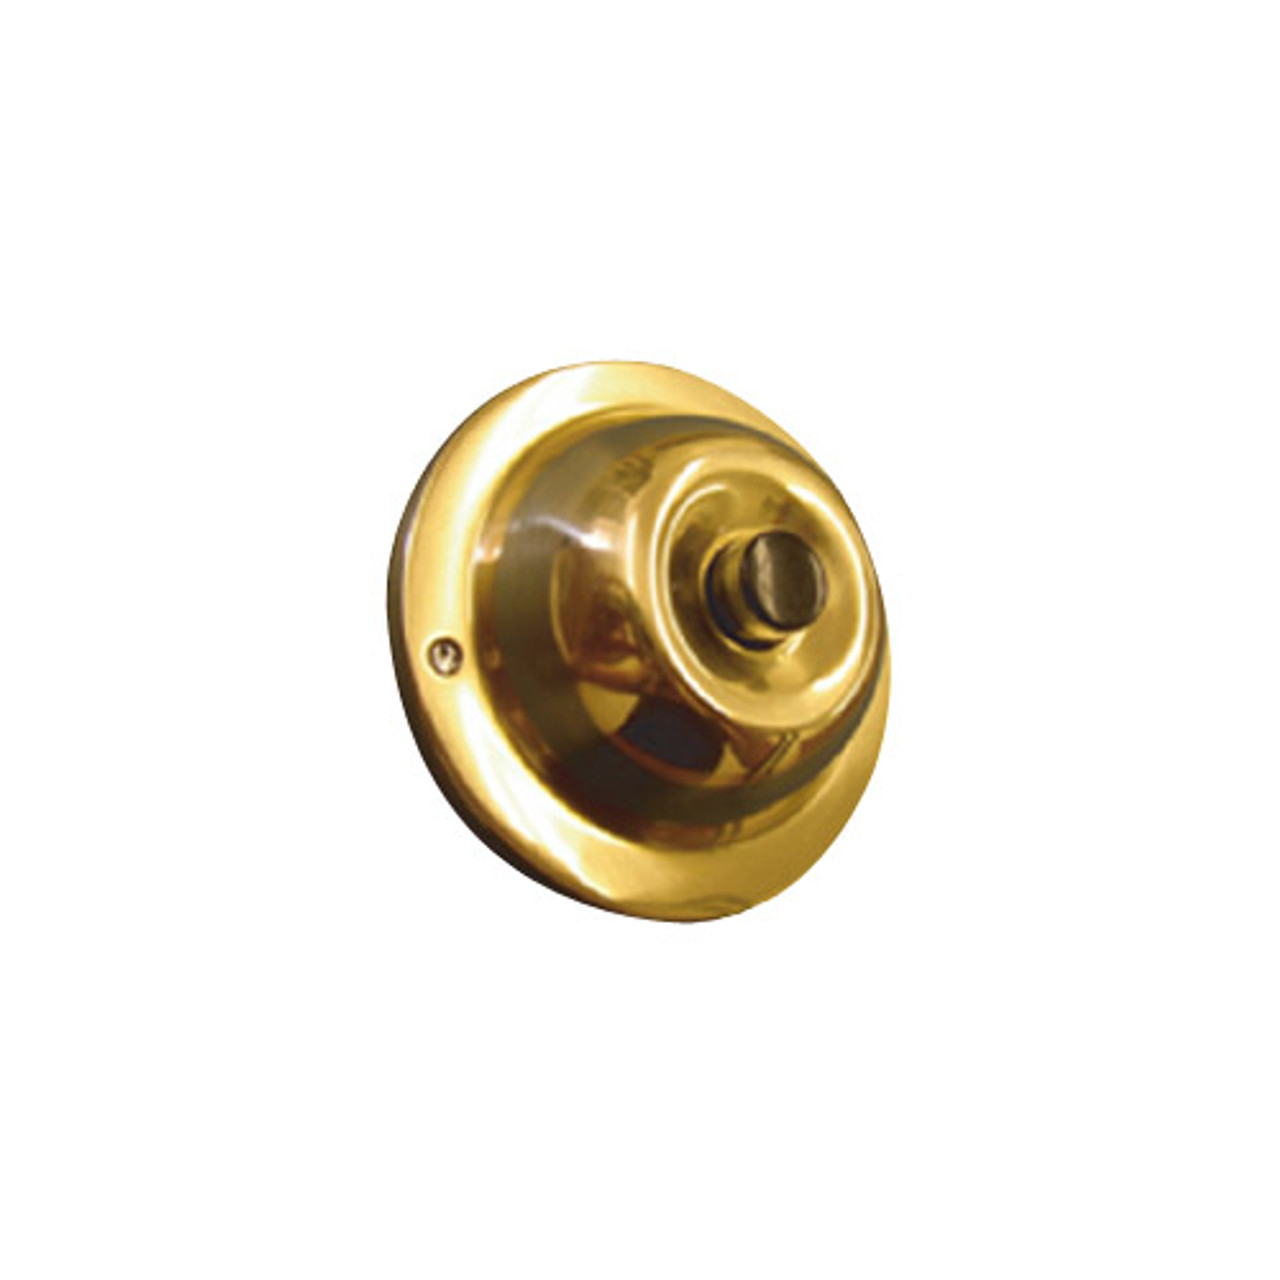 JRP Trine Push Bell Button in Polished Solid Brass with Black Center Finish